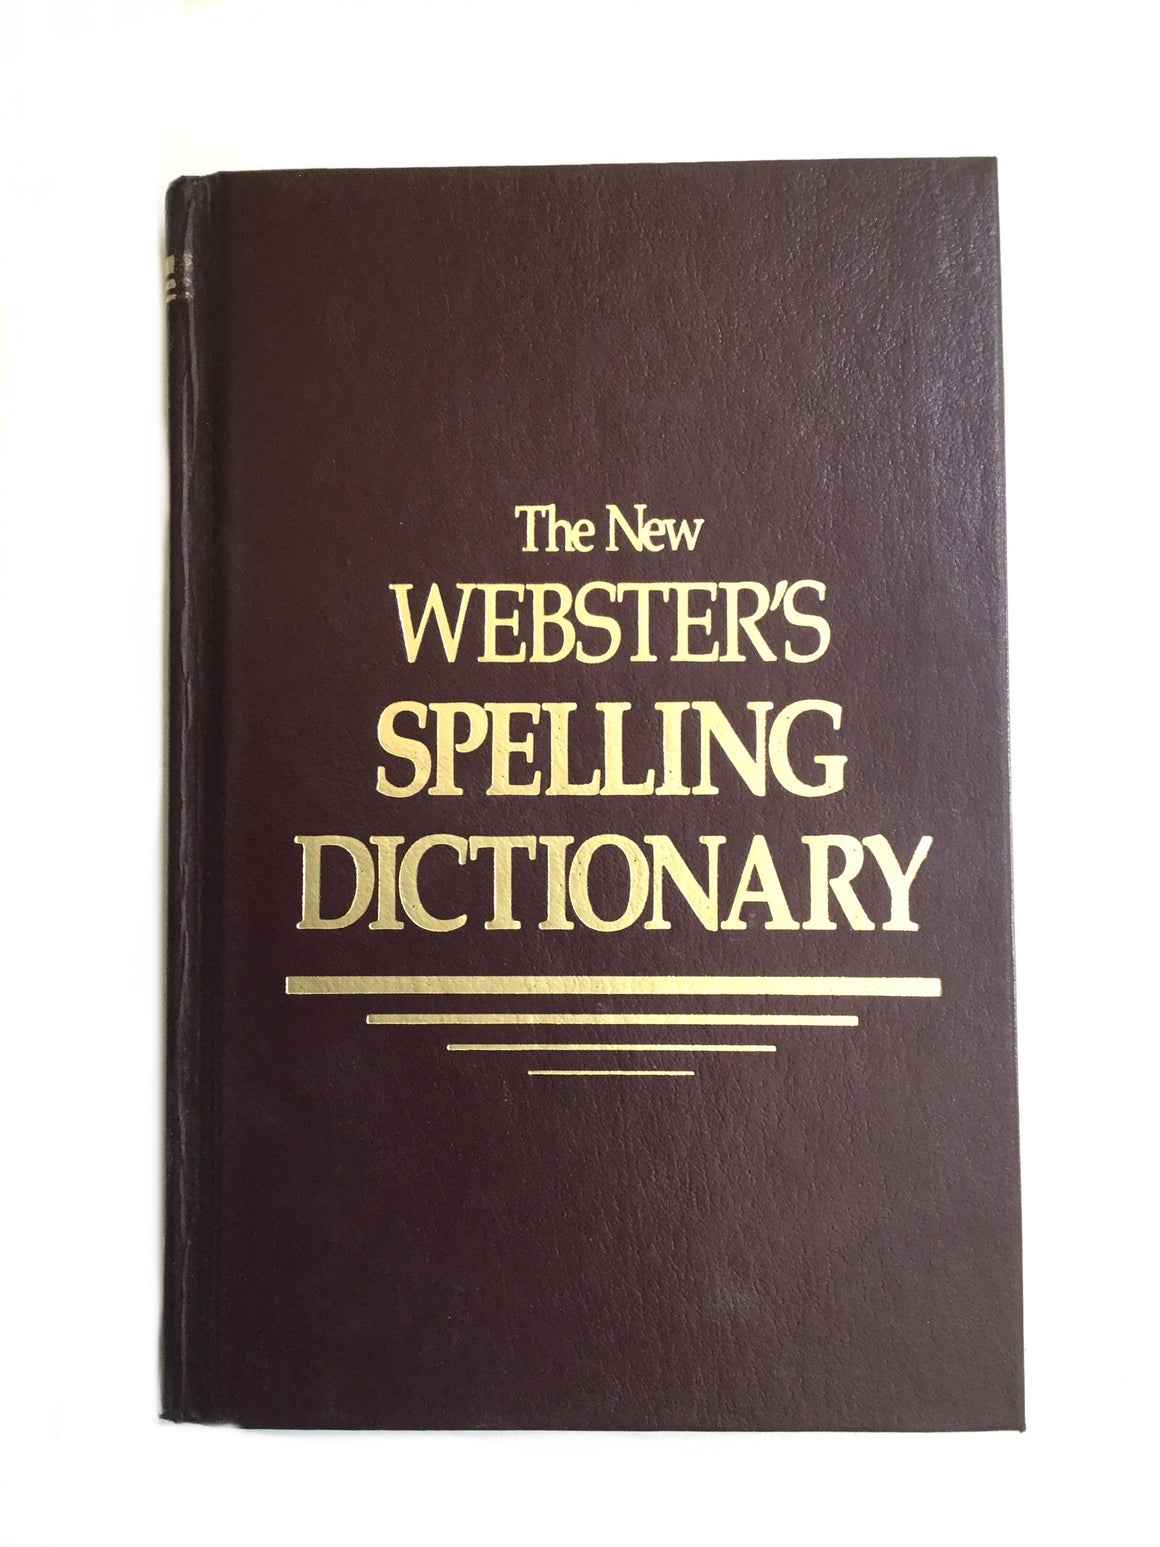 The New Webster's Spelling Dictionary-Red Barn Collections